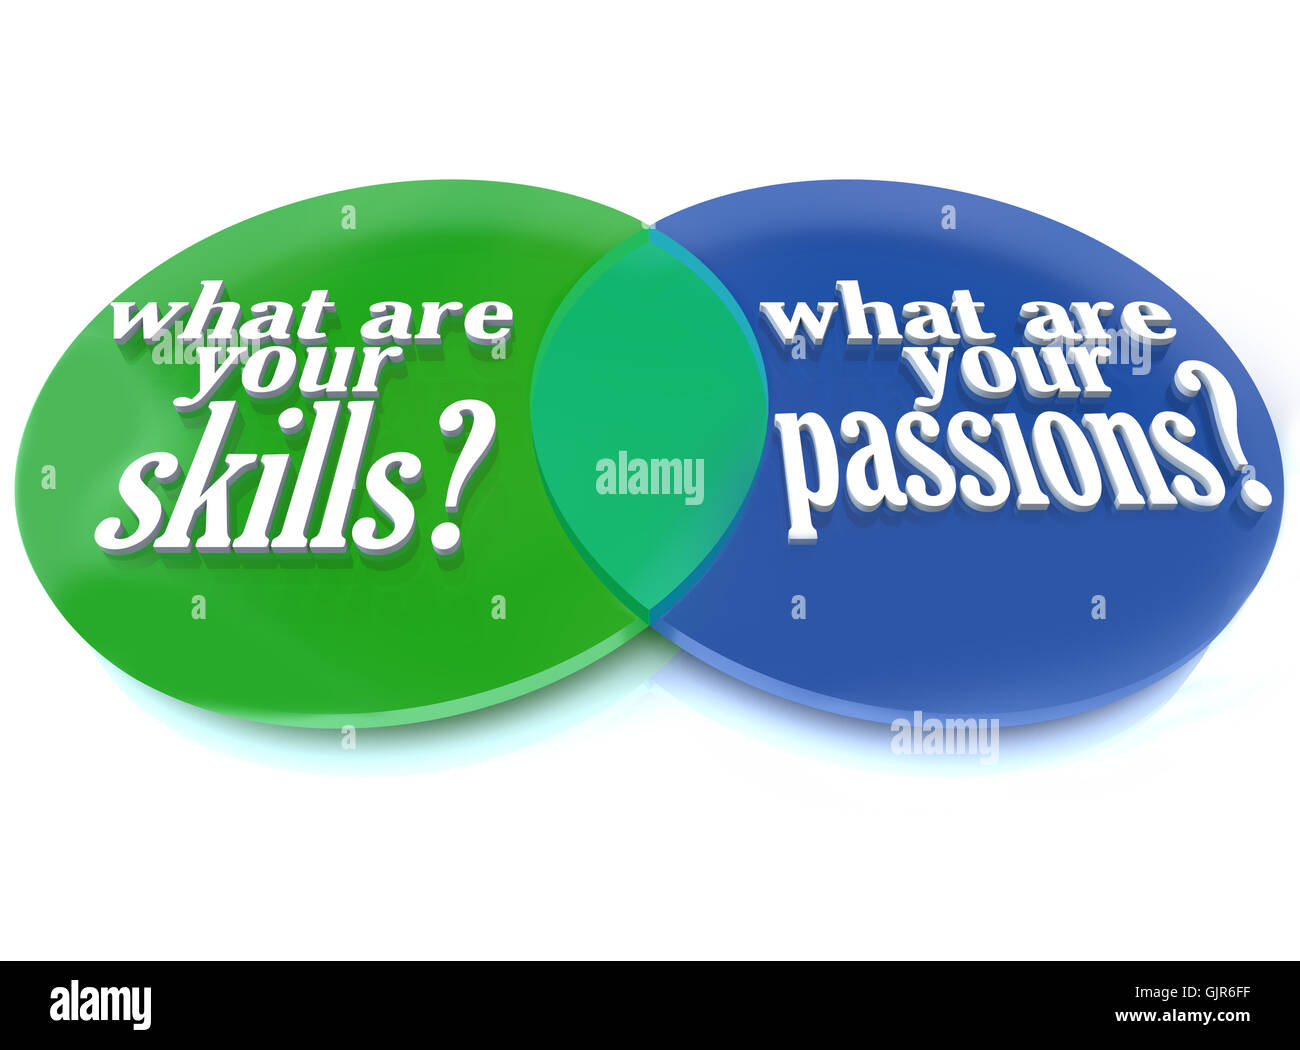 hight resolution of what are your skills and passions venn diagram